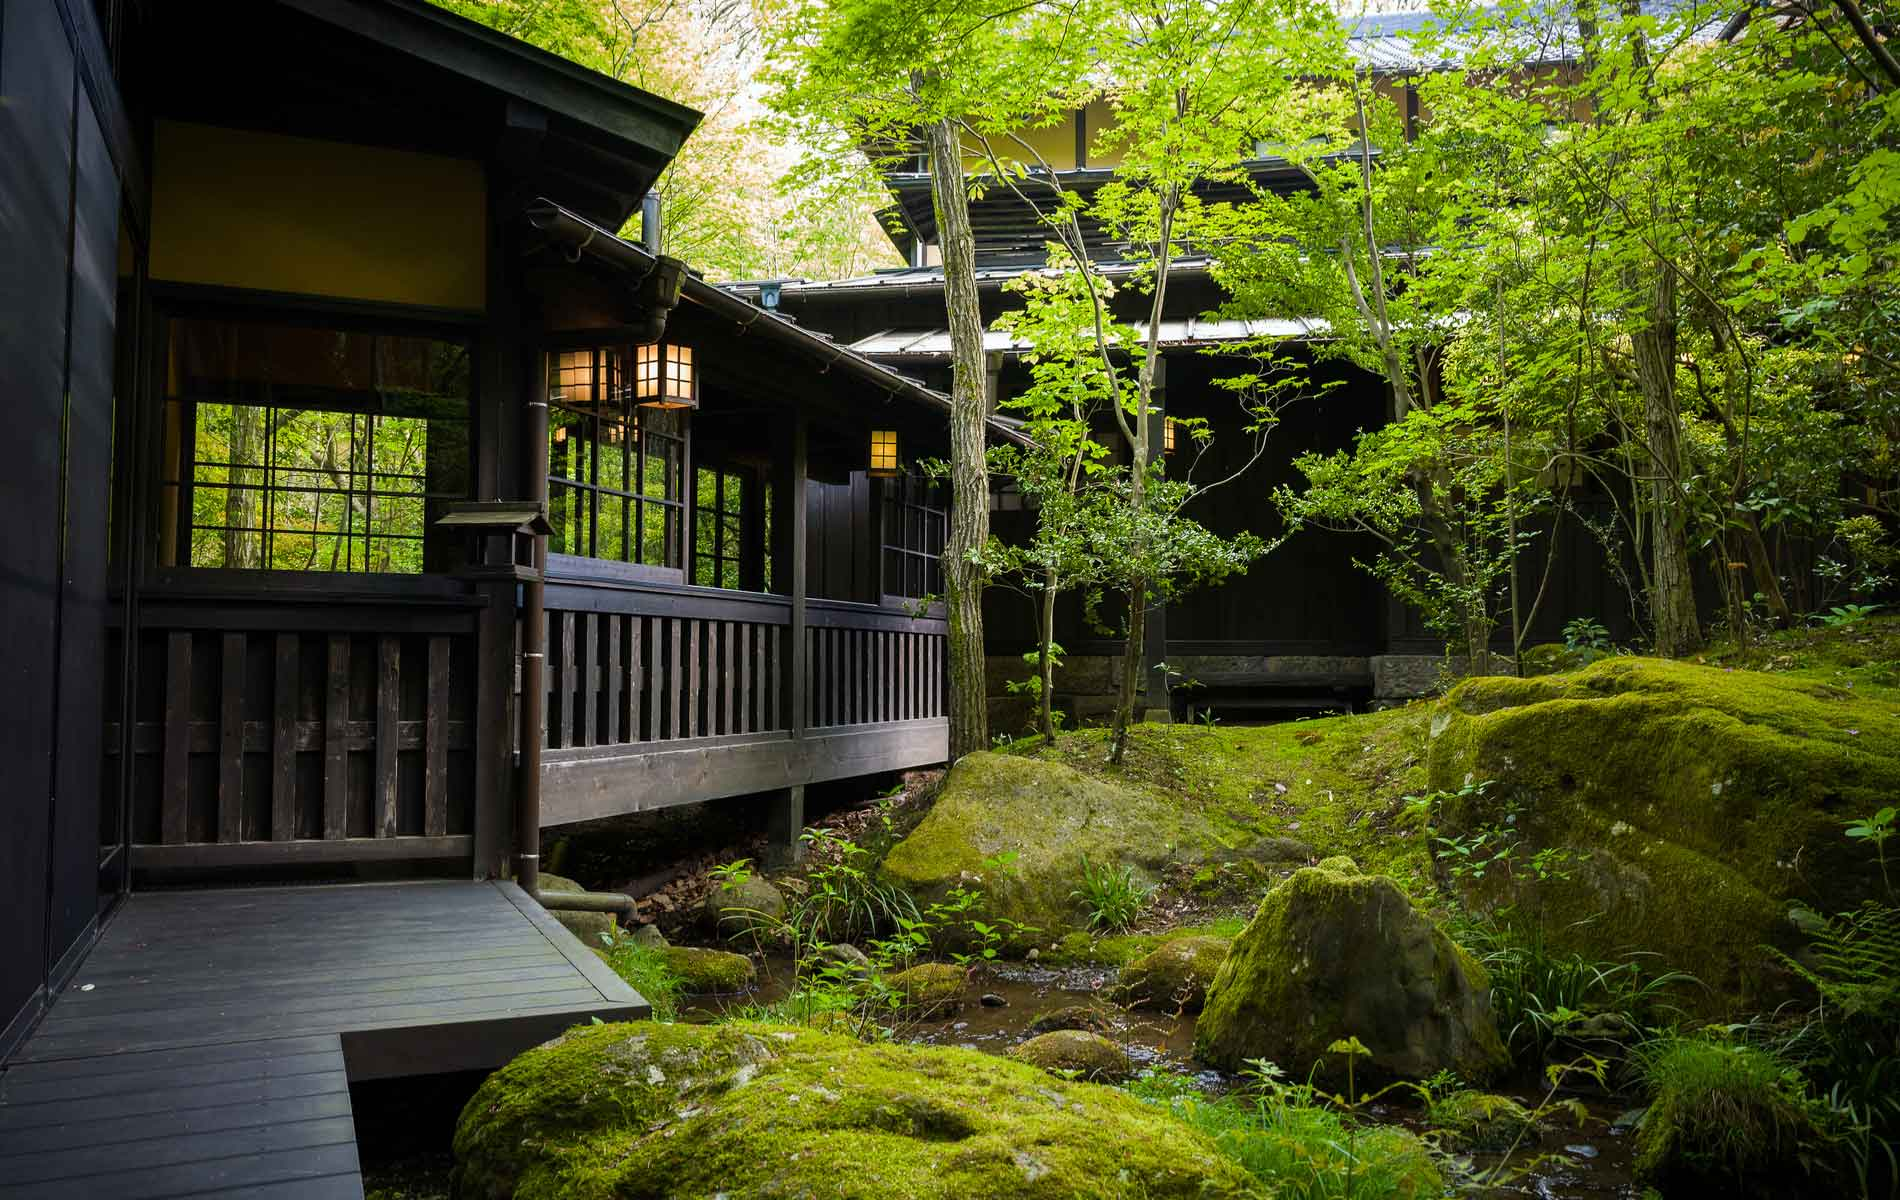 A Ryokan or Japanese traditional hotel